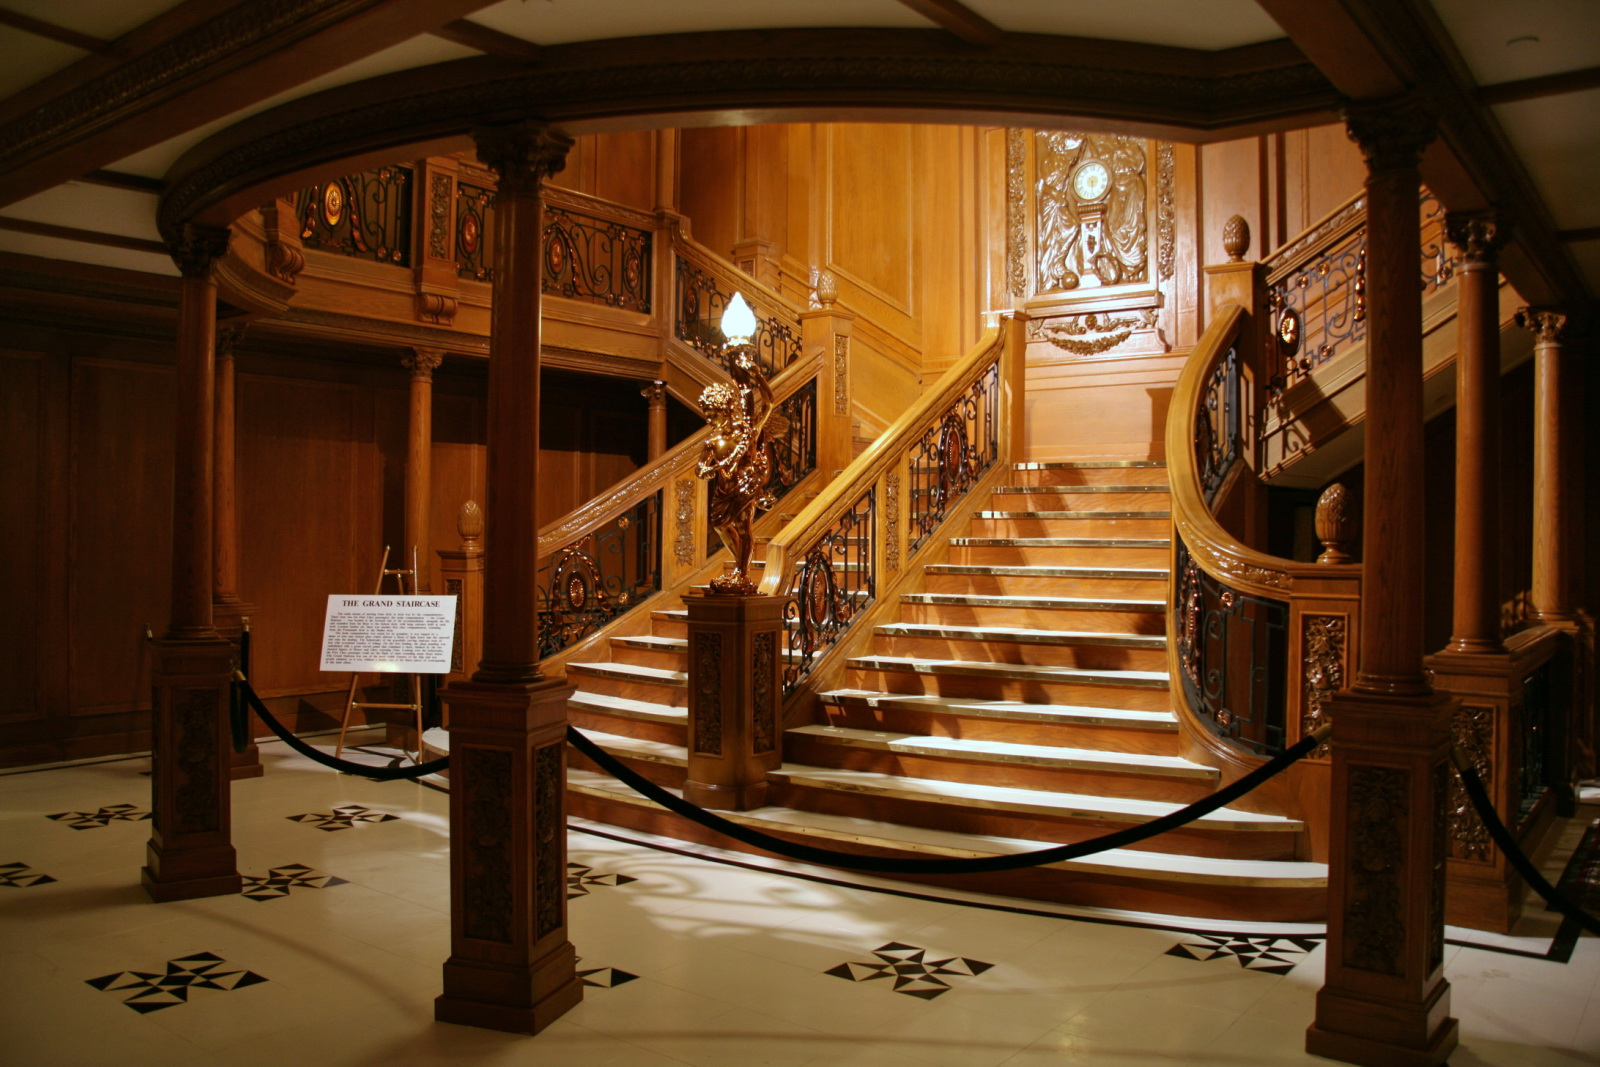 The Grand Staircase | Flickr - Photo Sharing!